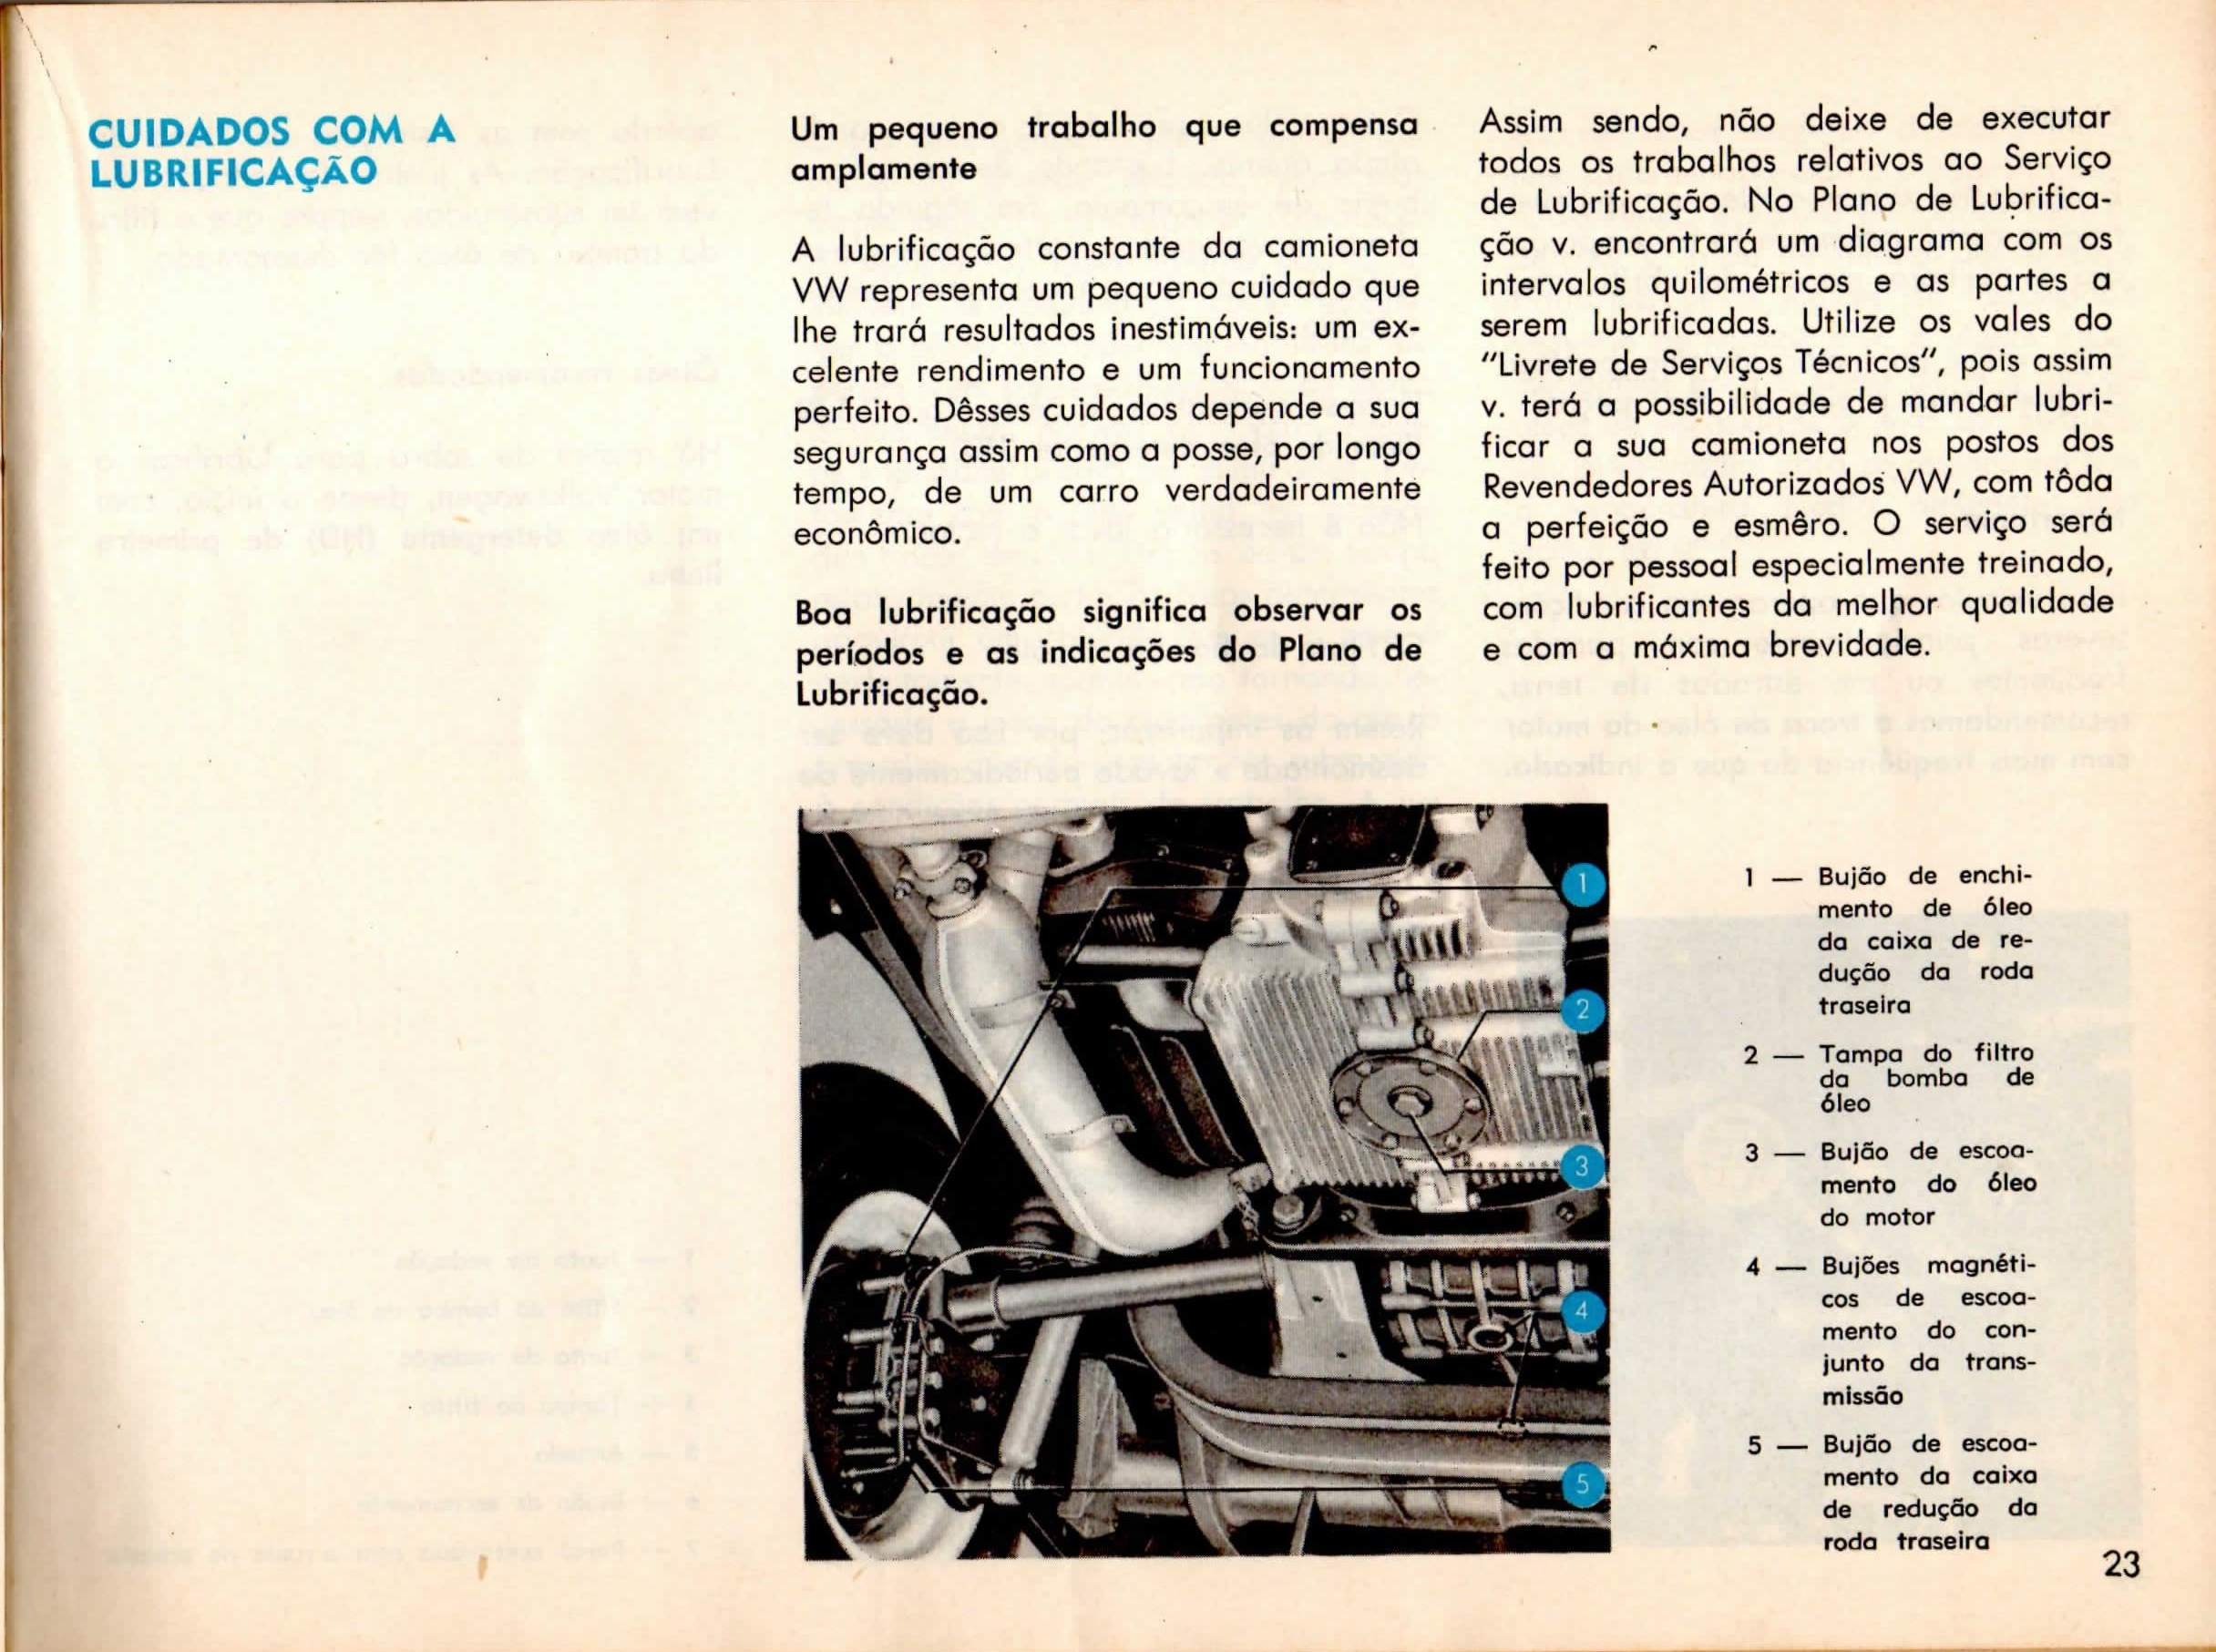 thesamba com september 1968 vw bus owner s manual brazil rh thesamba com